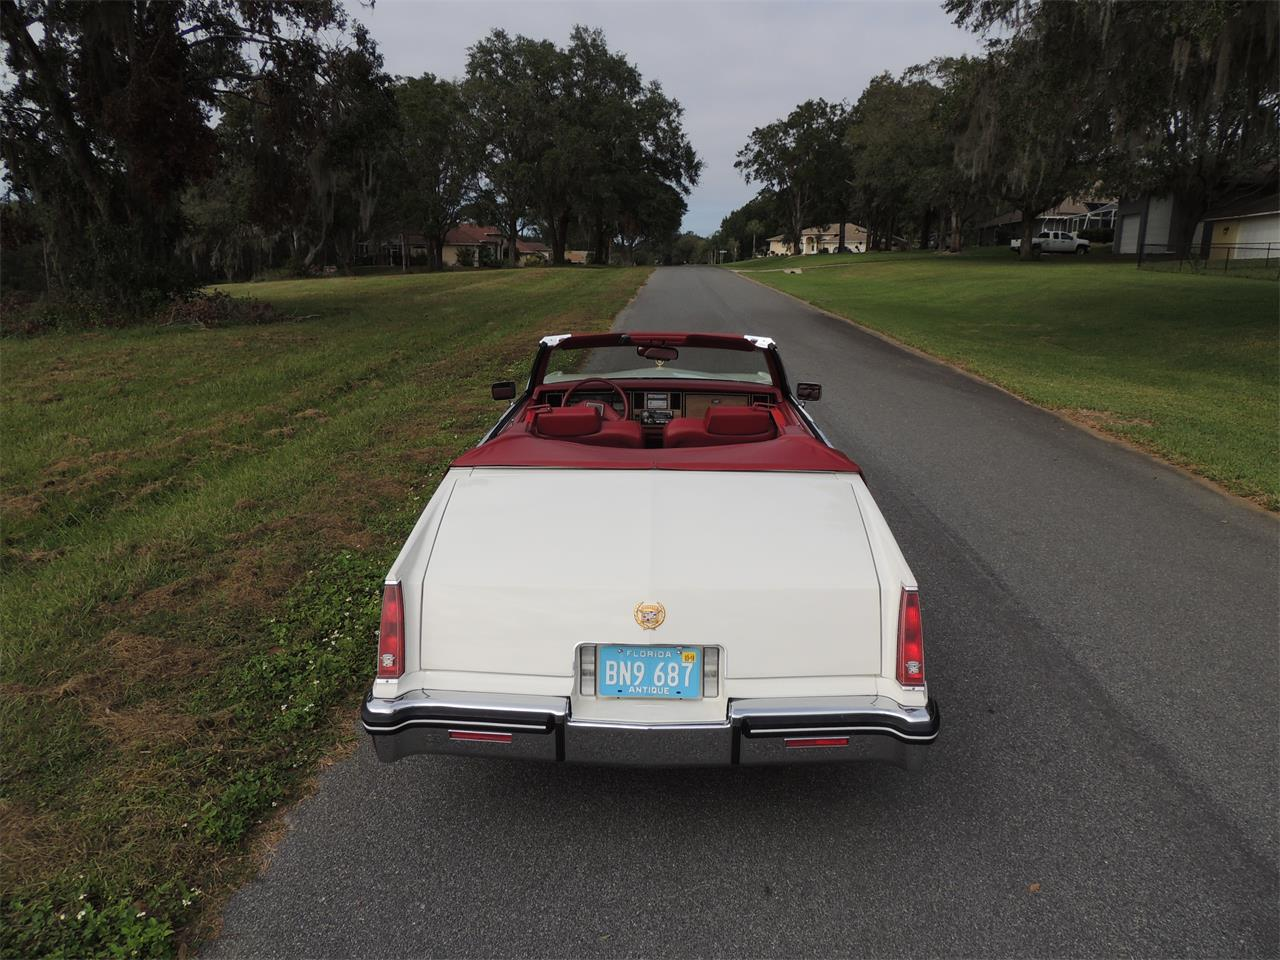 Large Picture of '85 Cadillac Eldorado Biarritz located in Land O Lakes Florida Offered by a Private Seller - MDP6